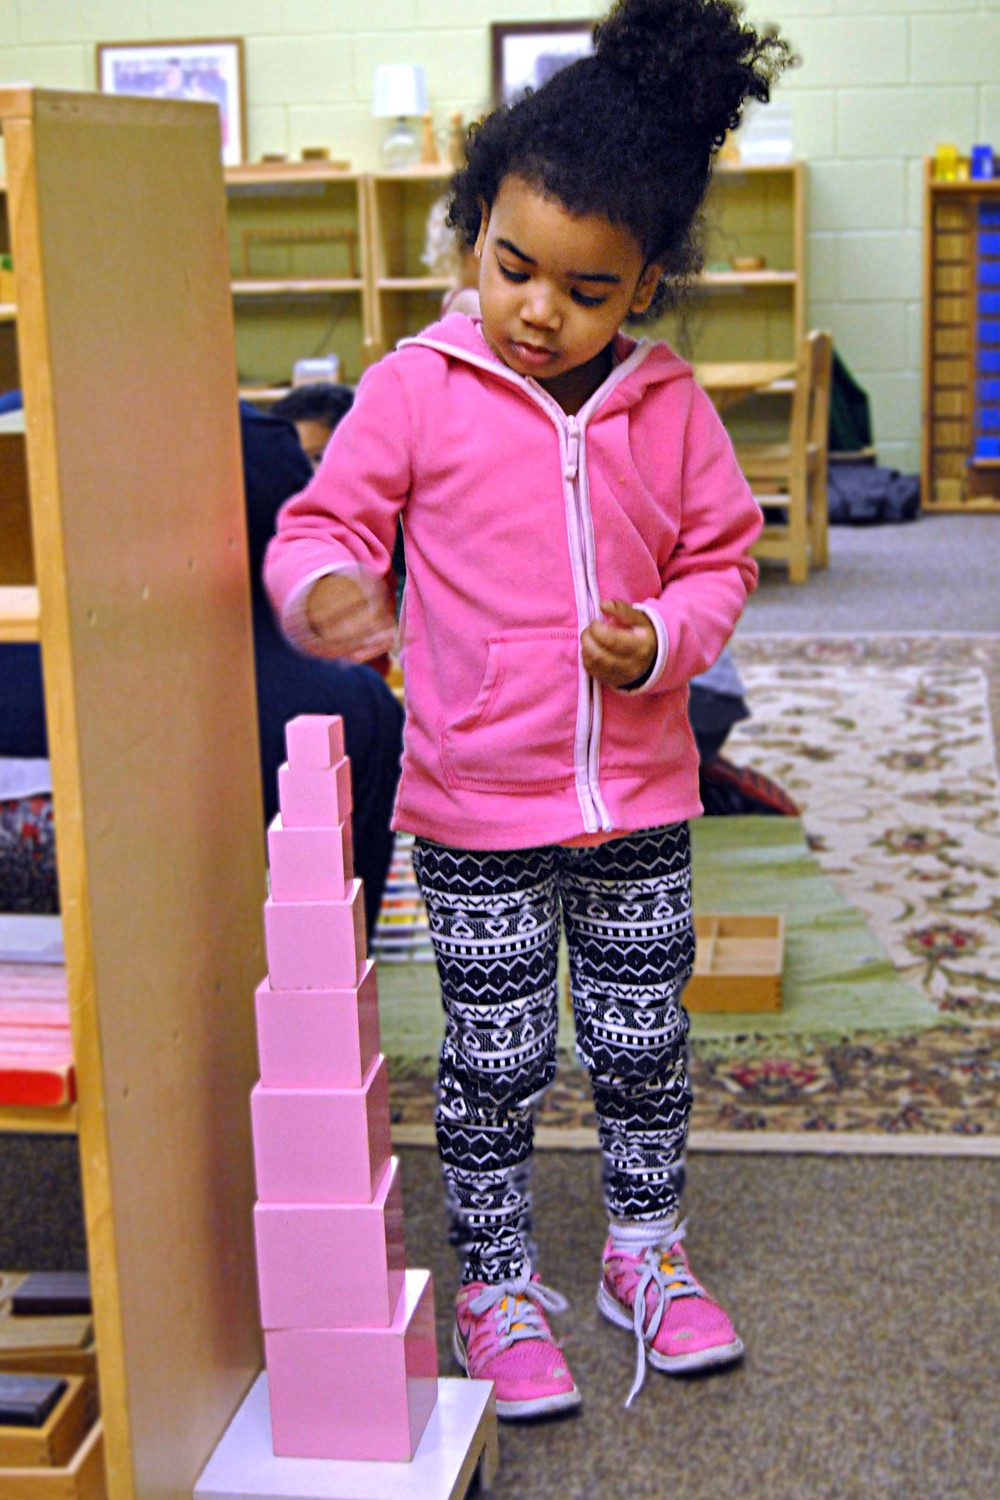 The pink tower helps children accomplish skills